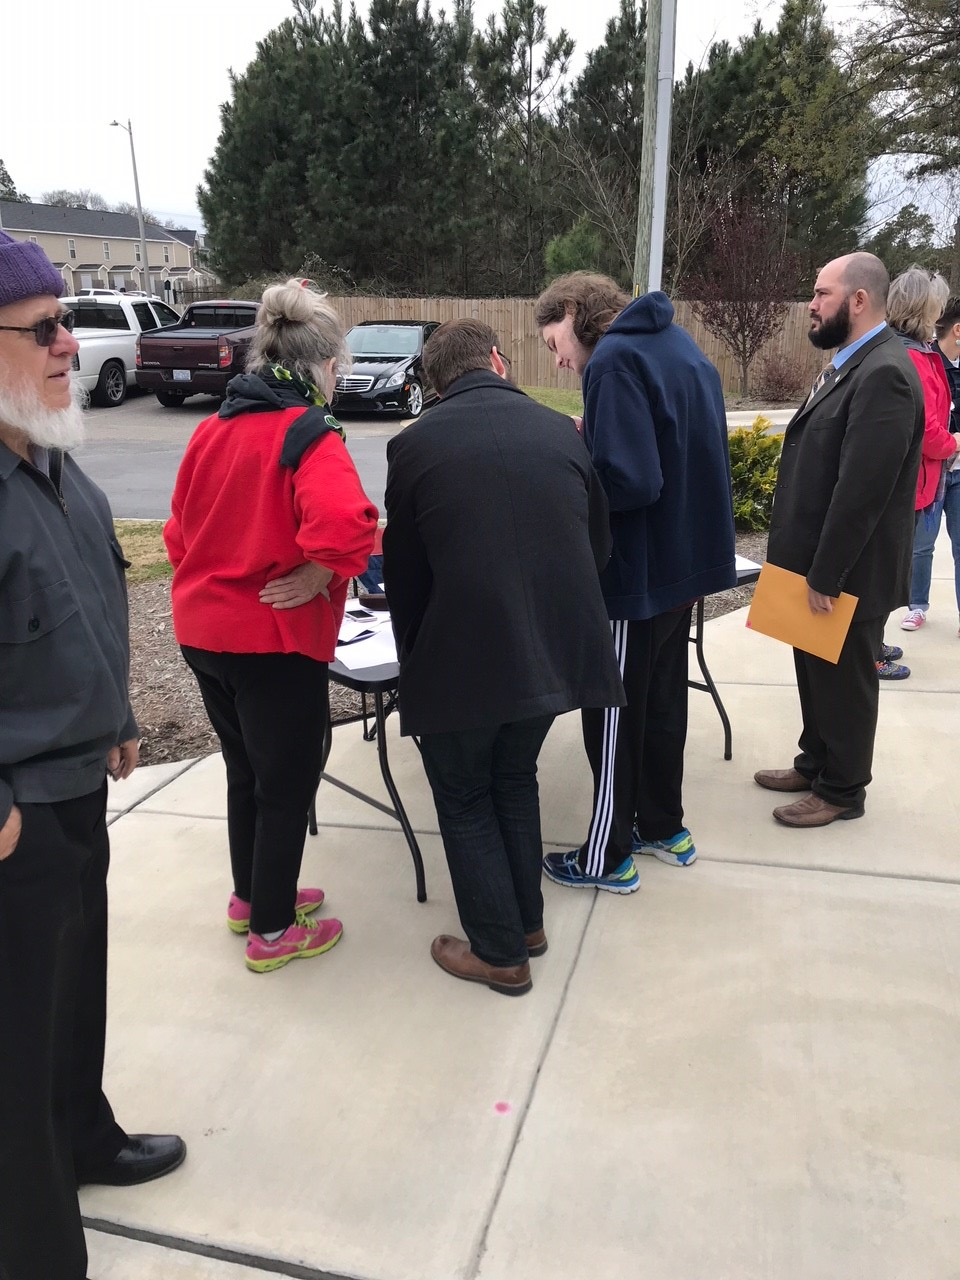 <div class='meta'><div class='origin-logo' data-origin='WTVD'></div><span class='caption-text' data-credit='Lou Guilette'>About a hundred people gathered in Fayetteville Saturday for March for Our Lives.</span></div>